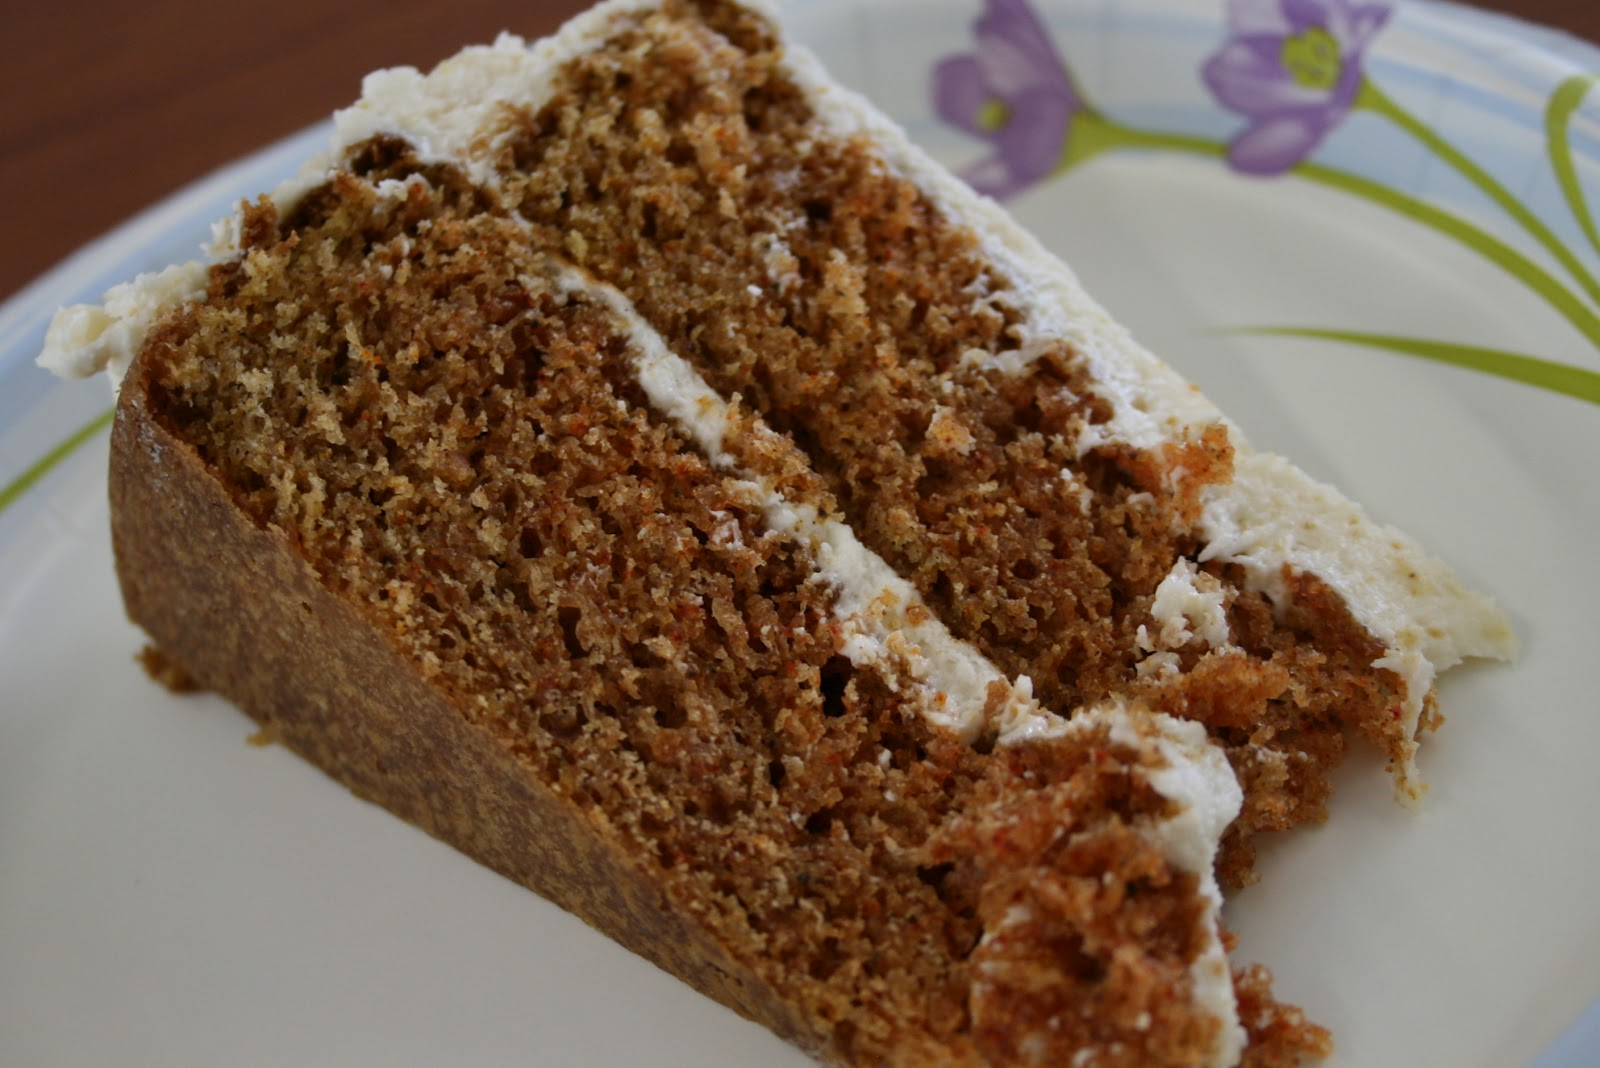 Sour Cream Spice Cake With Orange Butter Frosting